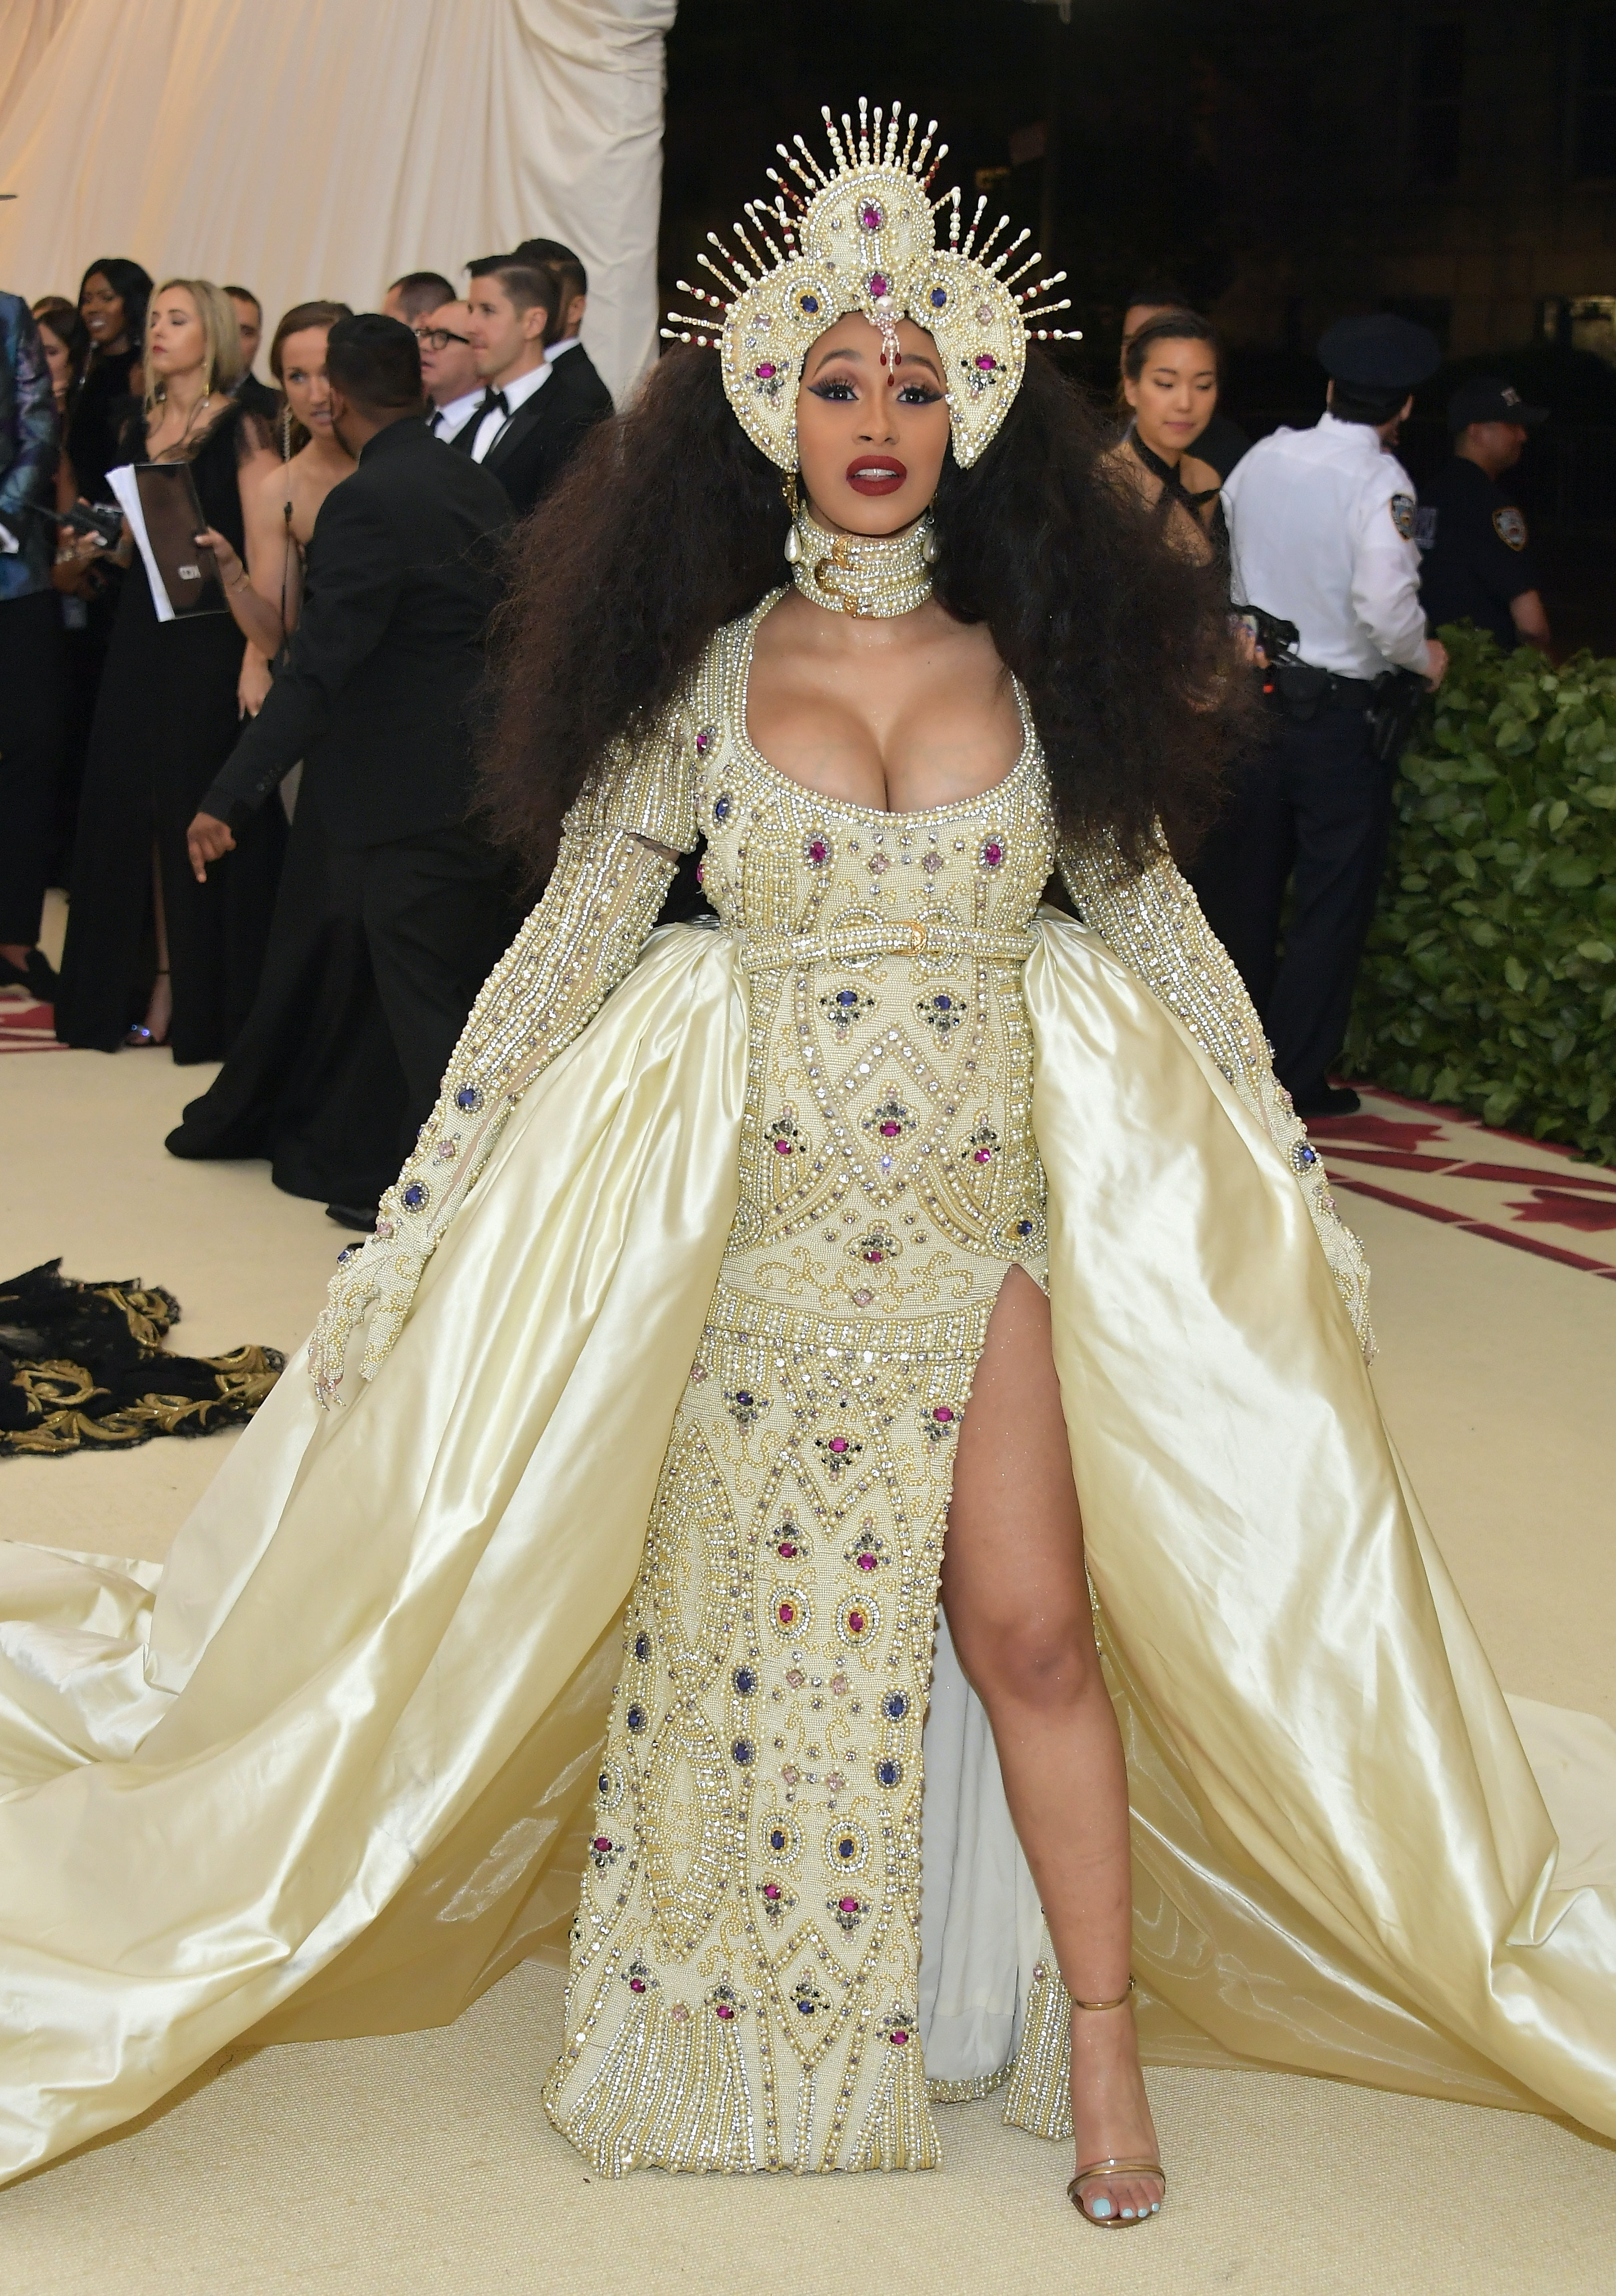 0d7e1acfcac Cardi B s 2018 Met Gala Look Is A Stunning Homage To Beyonce At The 2017  Grammys